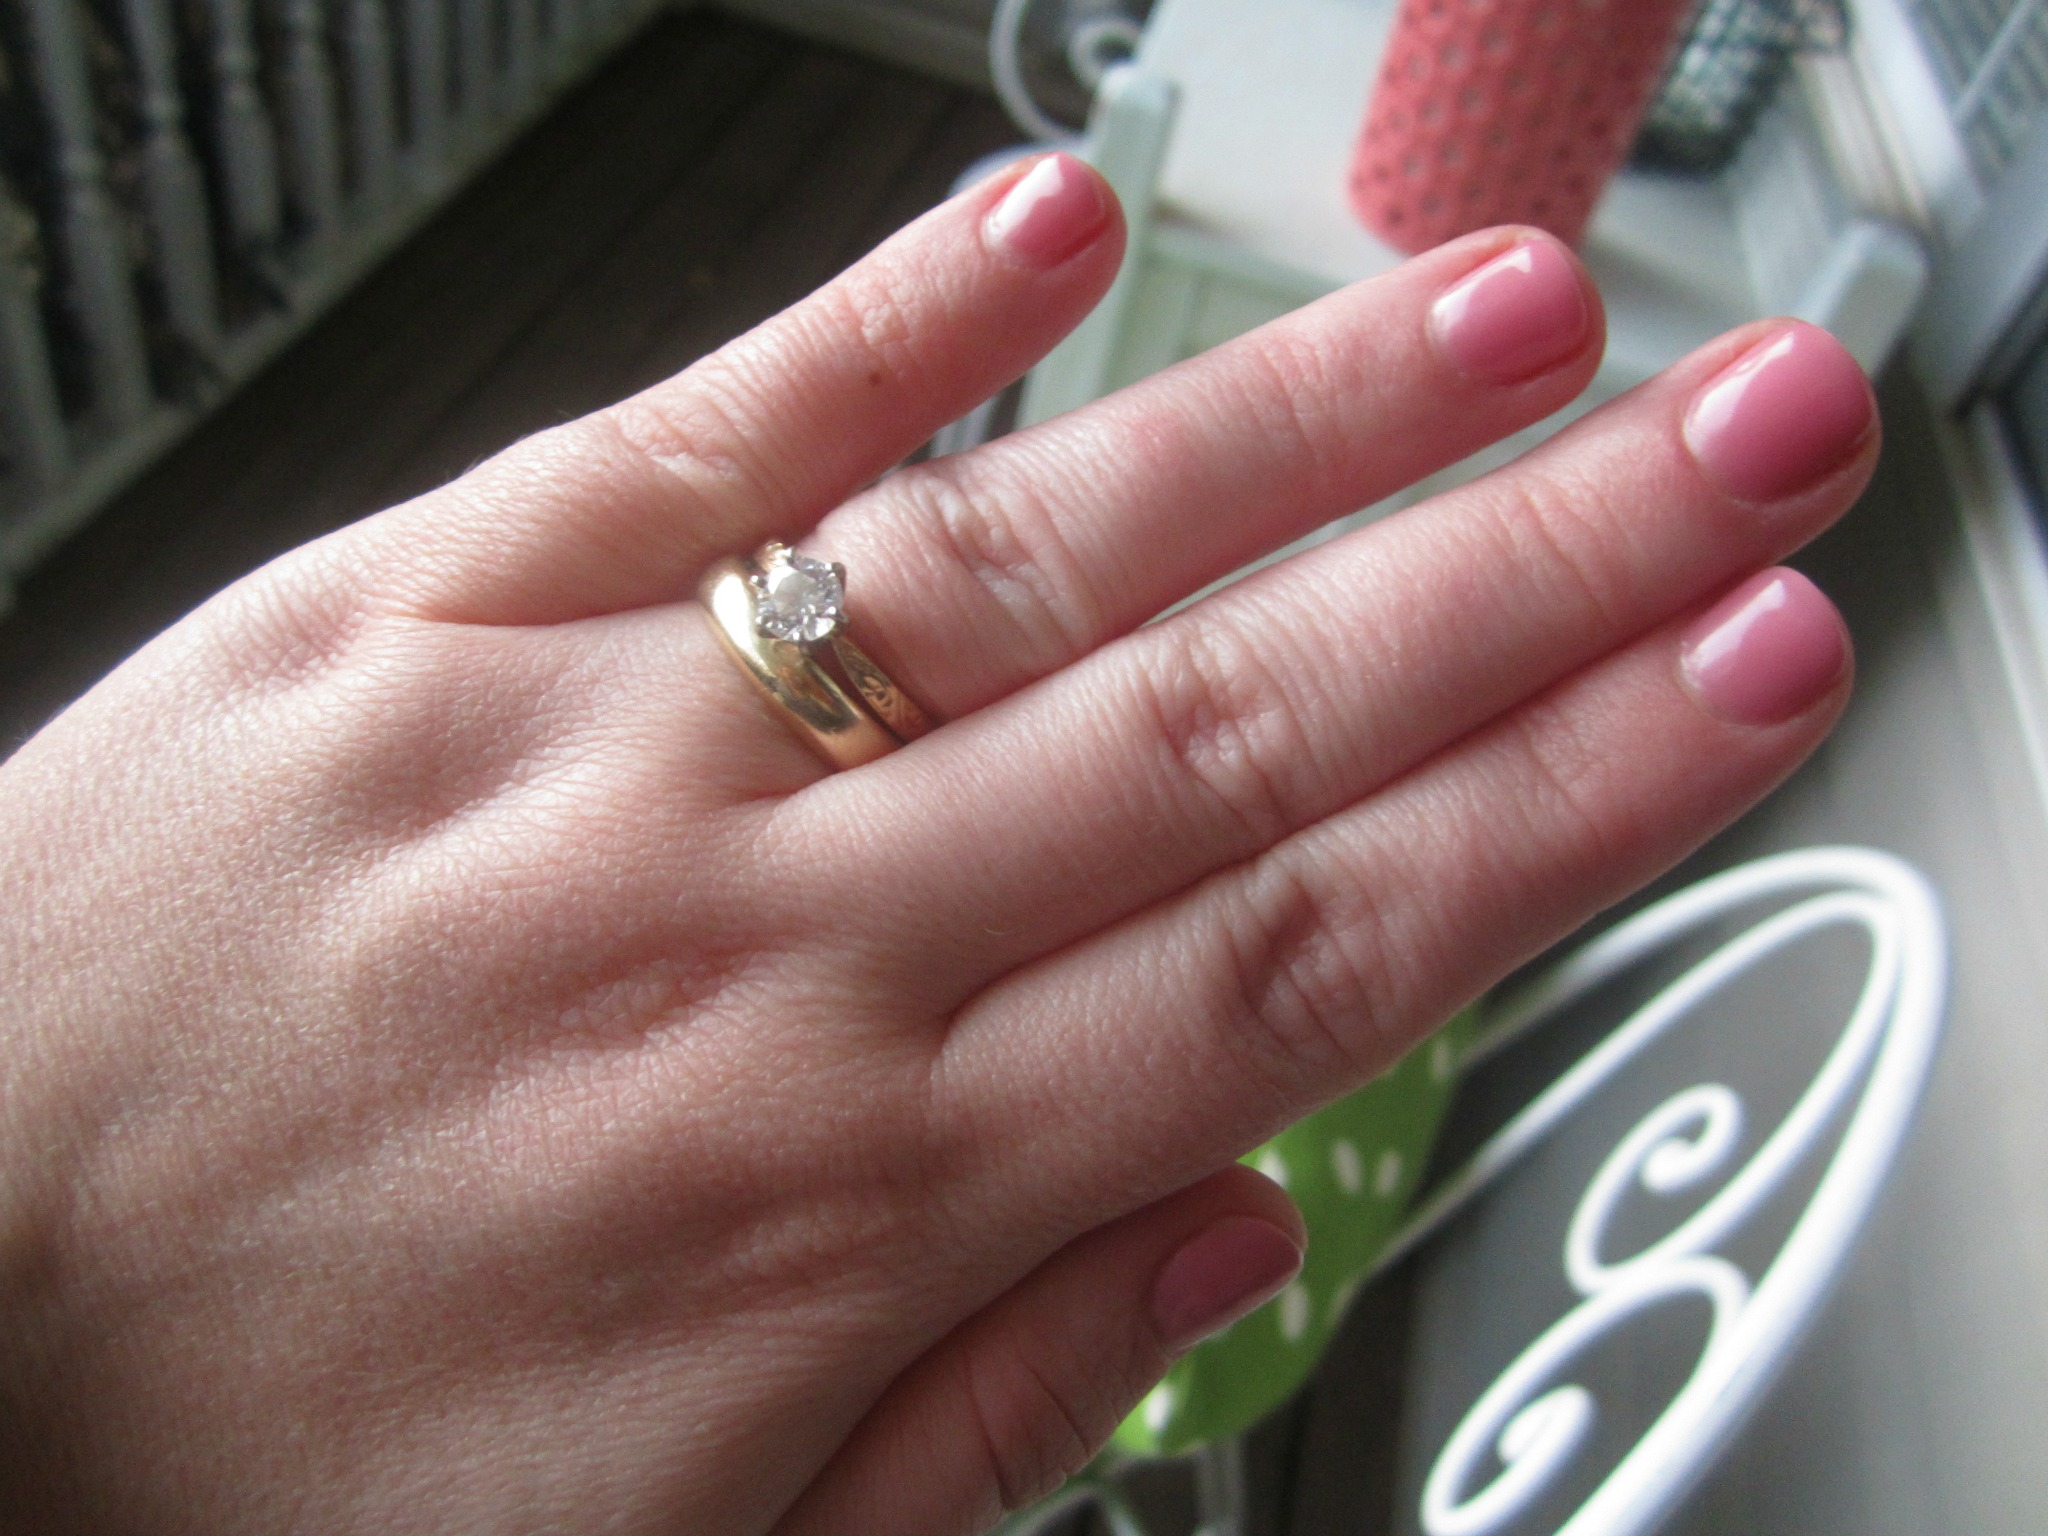 Monday Randomness: Dinner Out, A Gel Manicure and Great Friends  